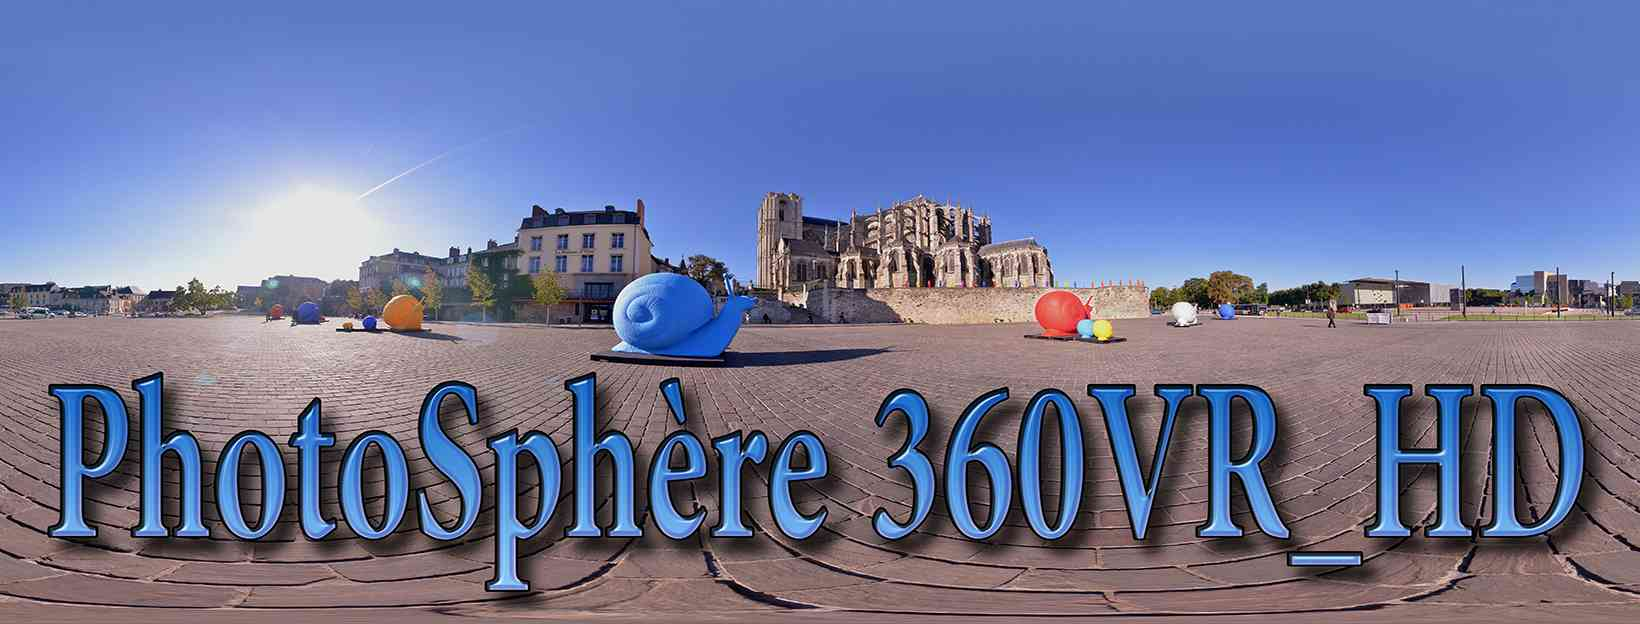 Photosphere 360 VR | Le Mans France | 360 3D VR tours